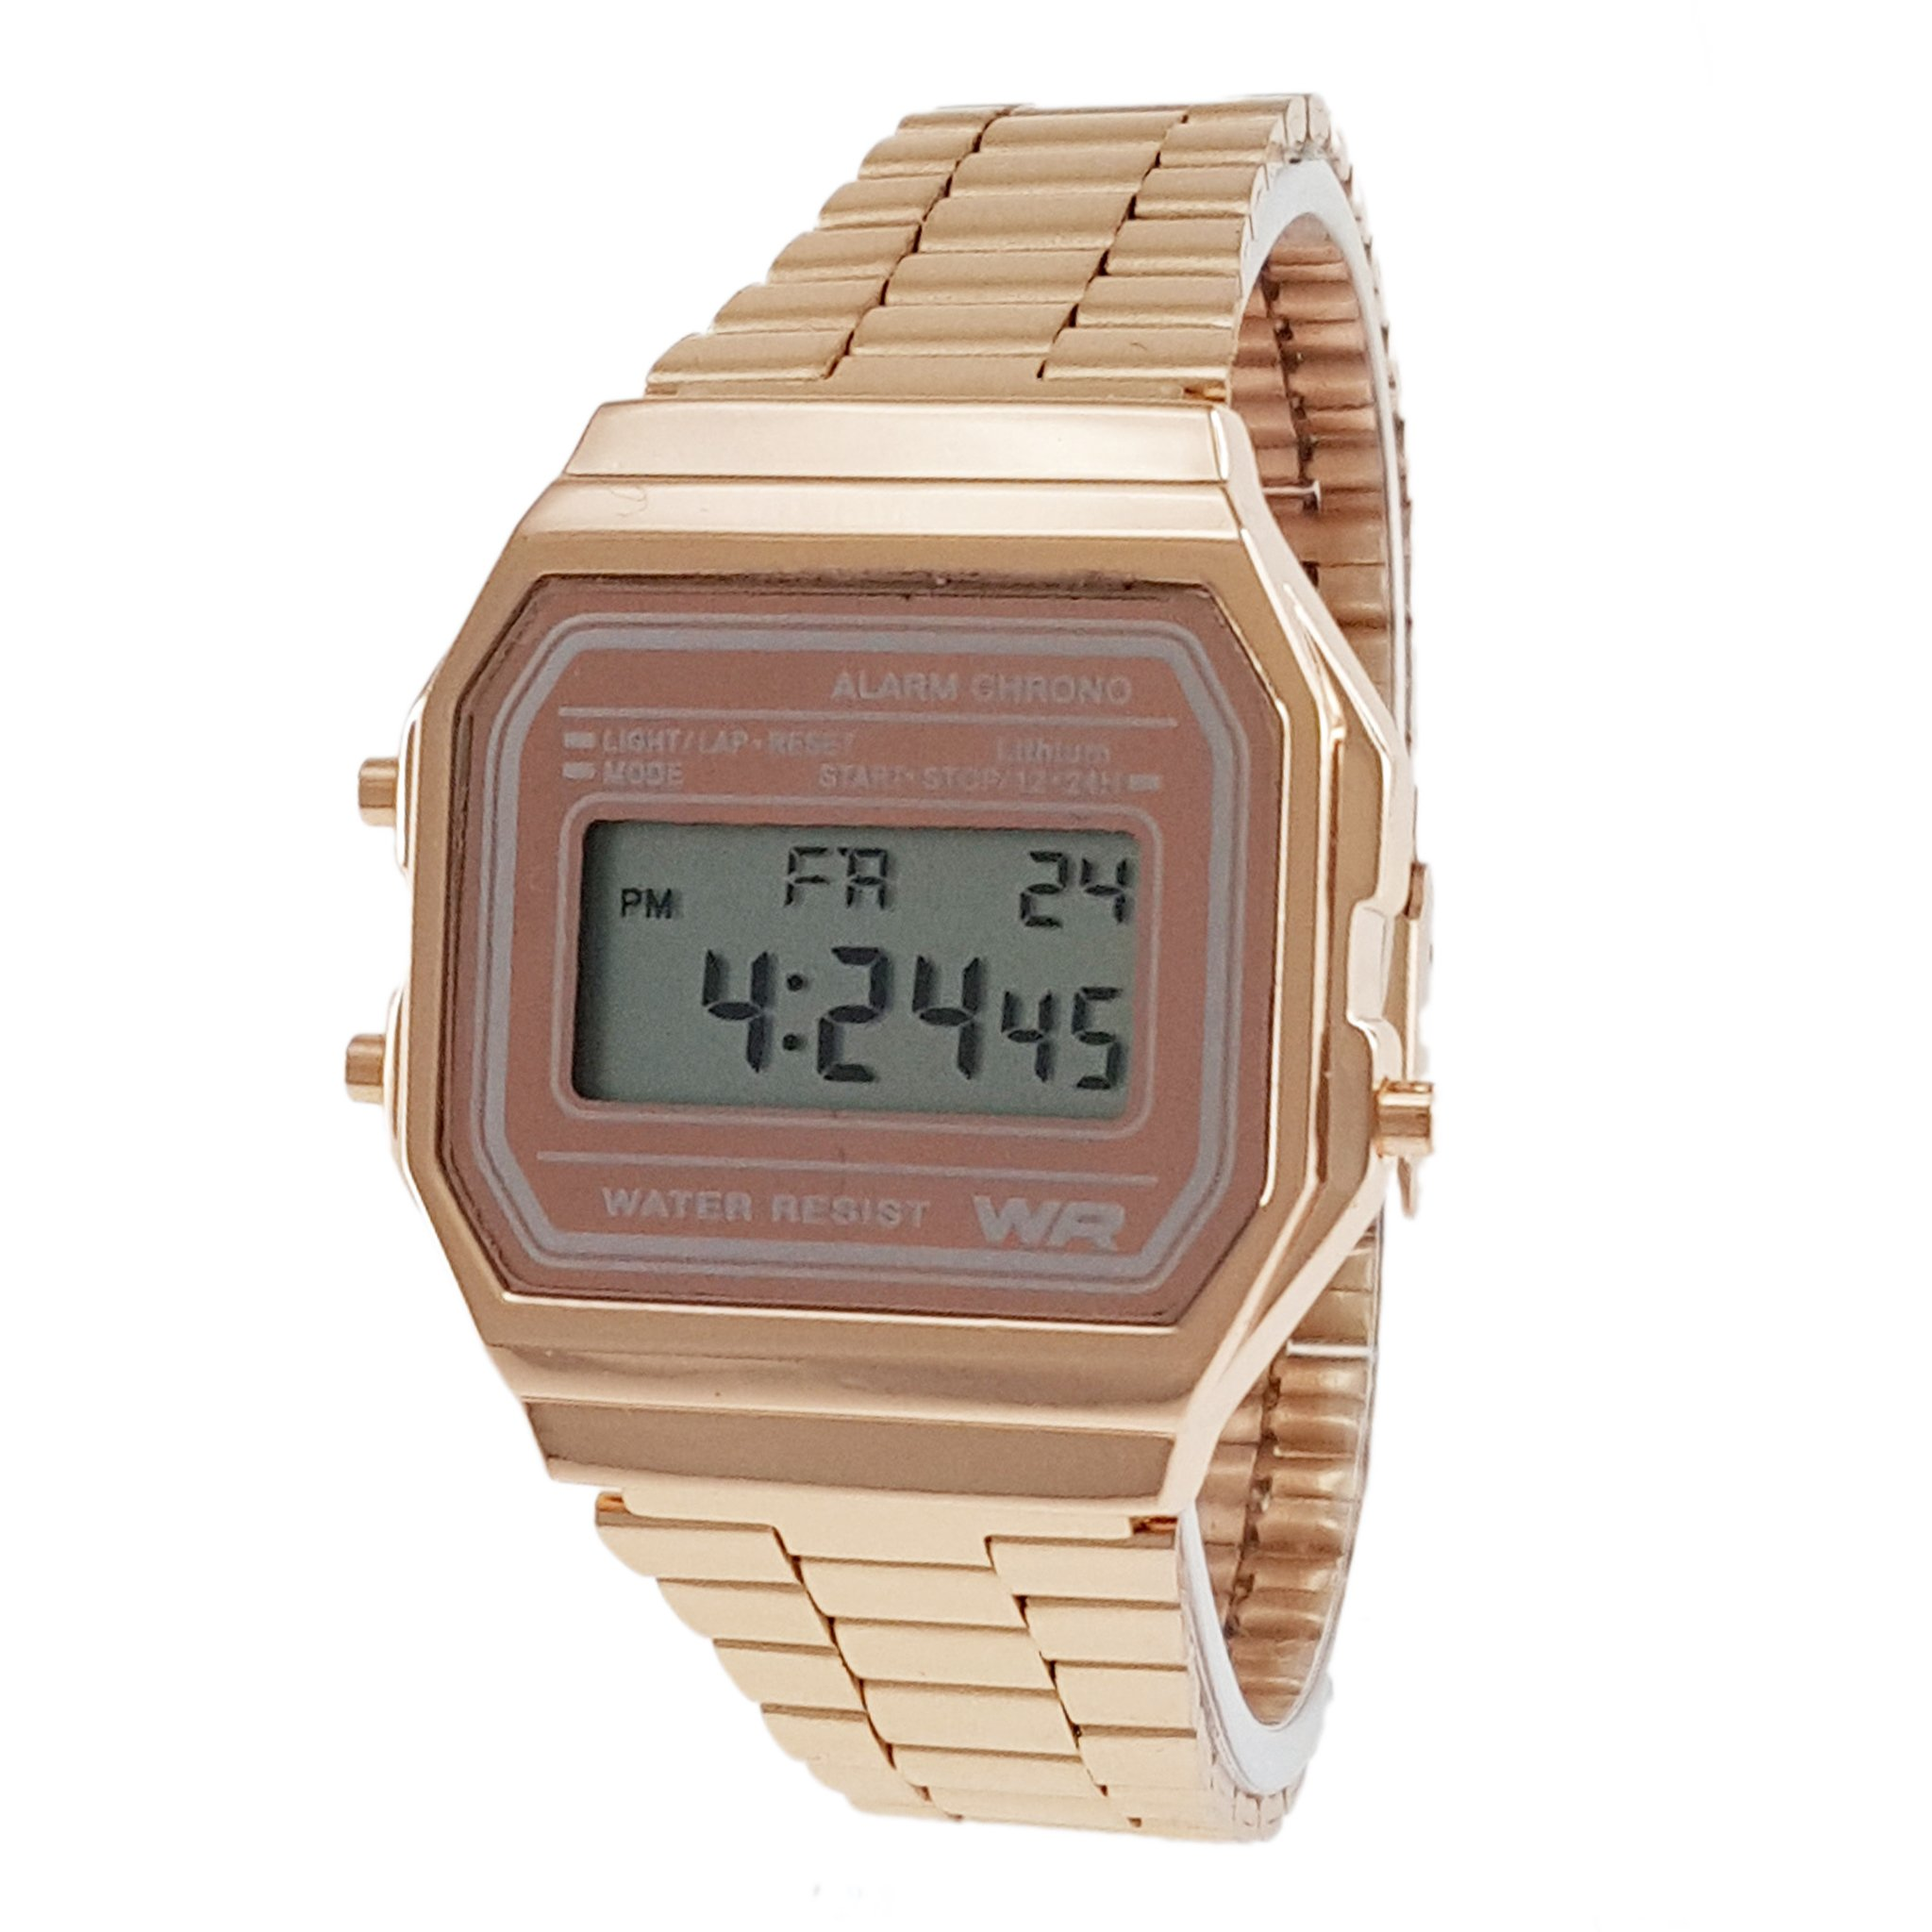 Classic Men's Rose Gold Stainless Steel Digital Display Watch & Swanson Zipper Travel Gym Case